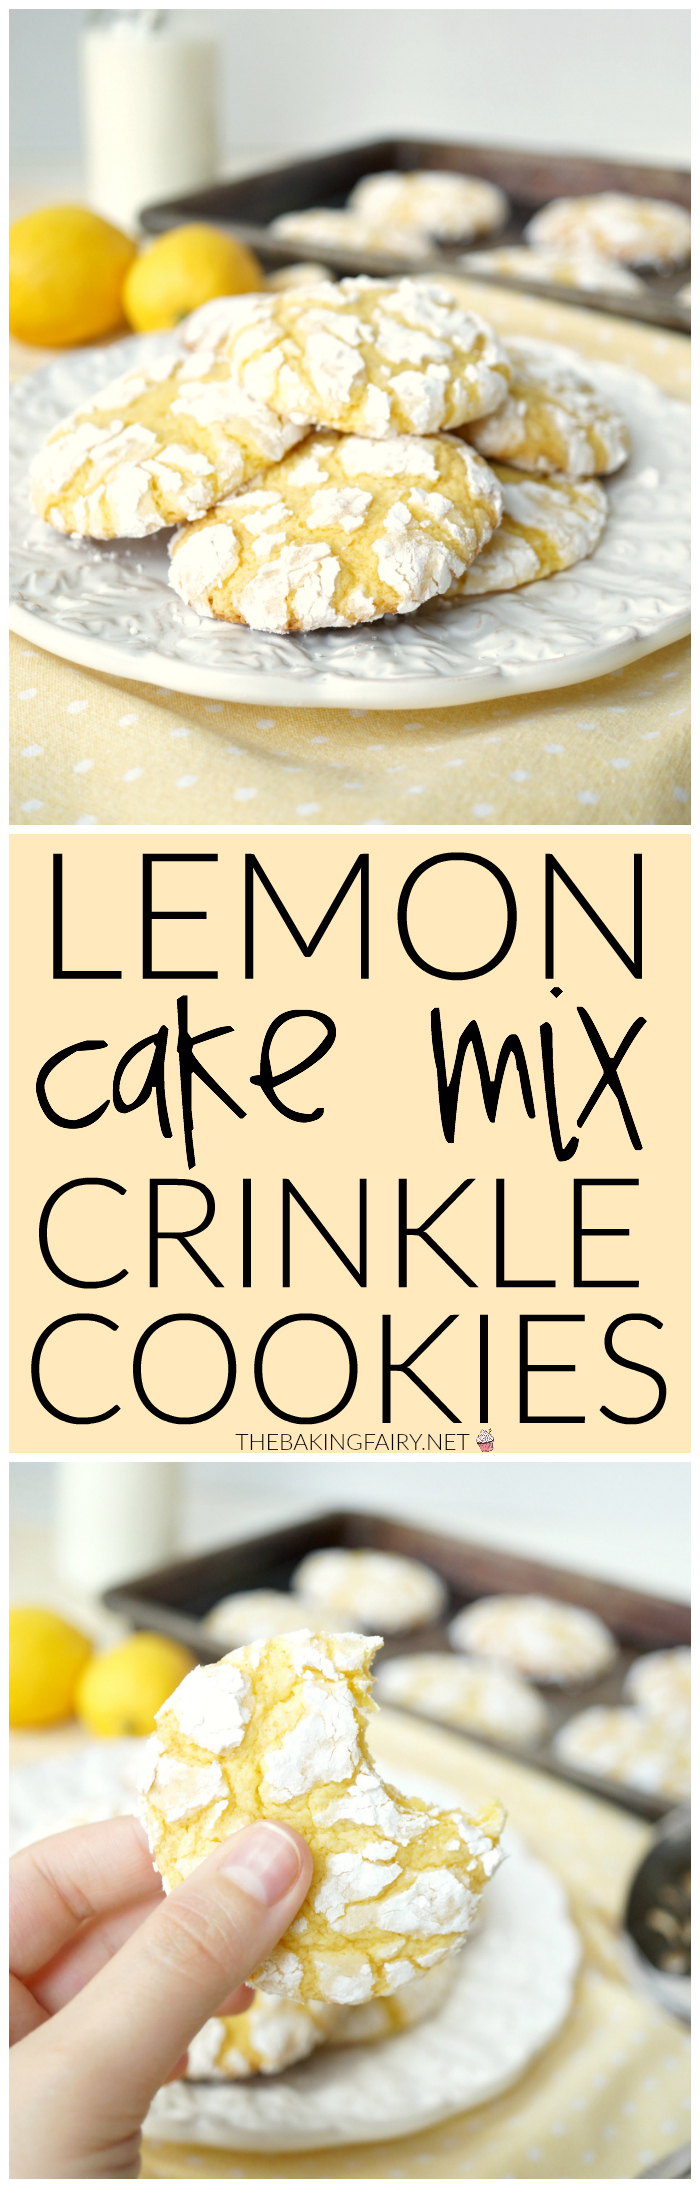 Lemon Cake Mix Cookies With Lemon Extract